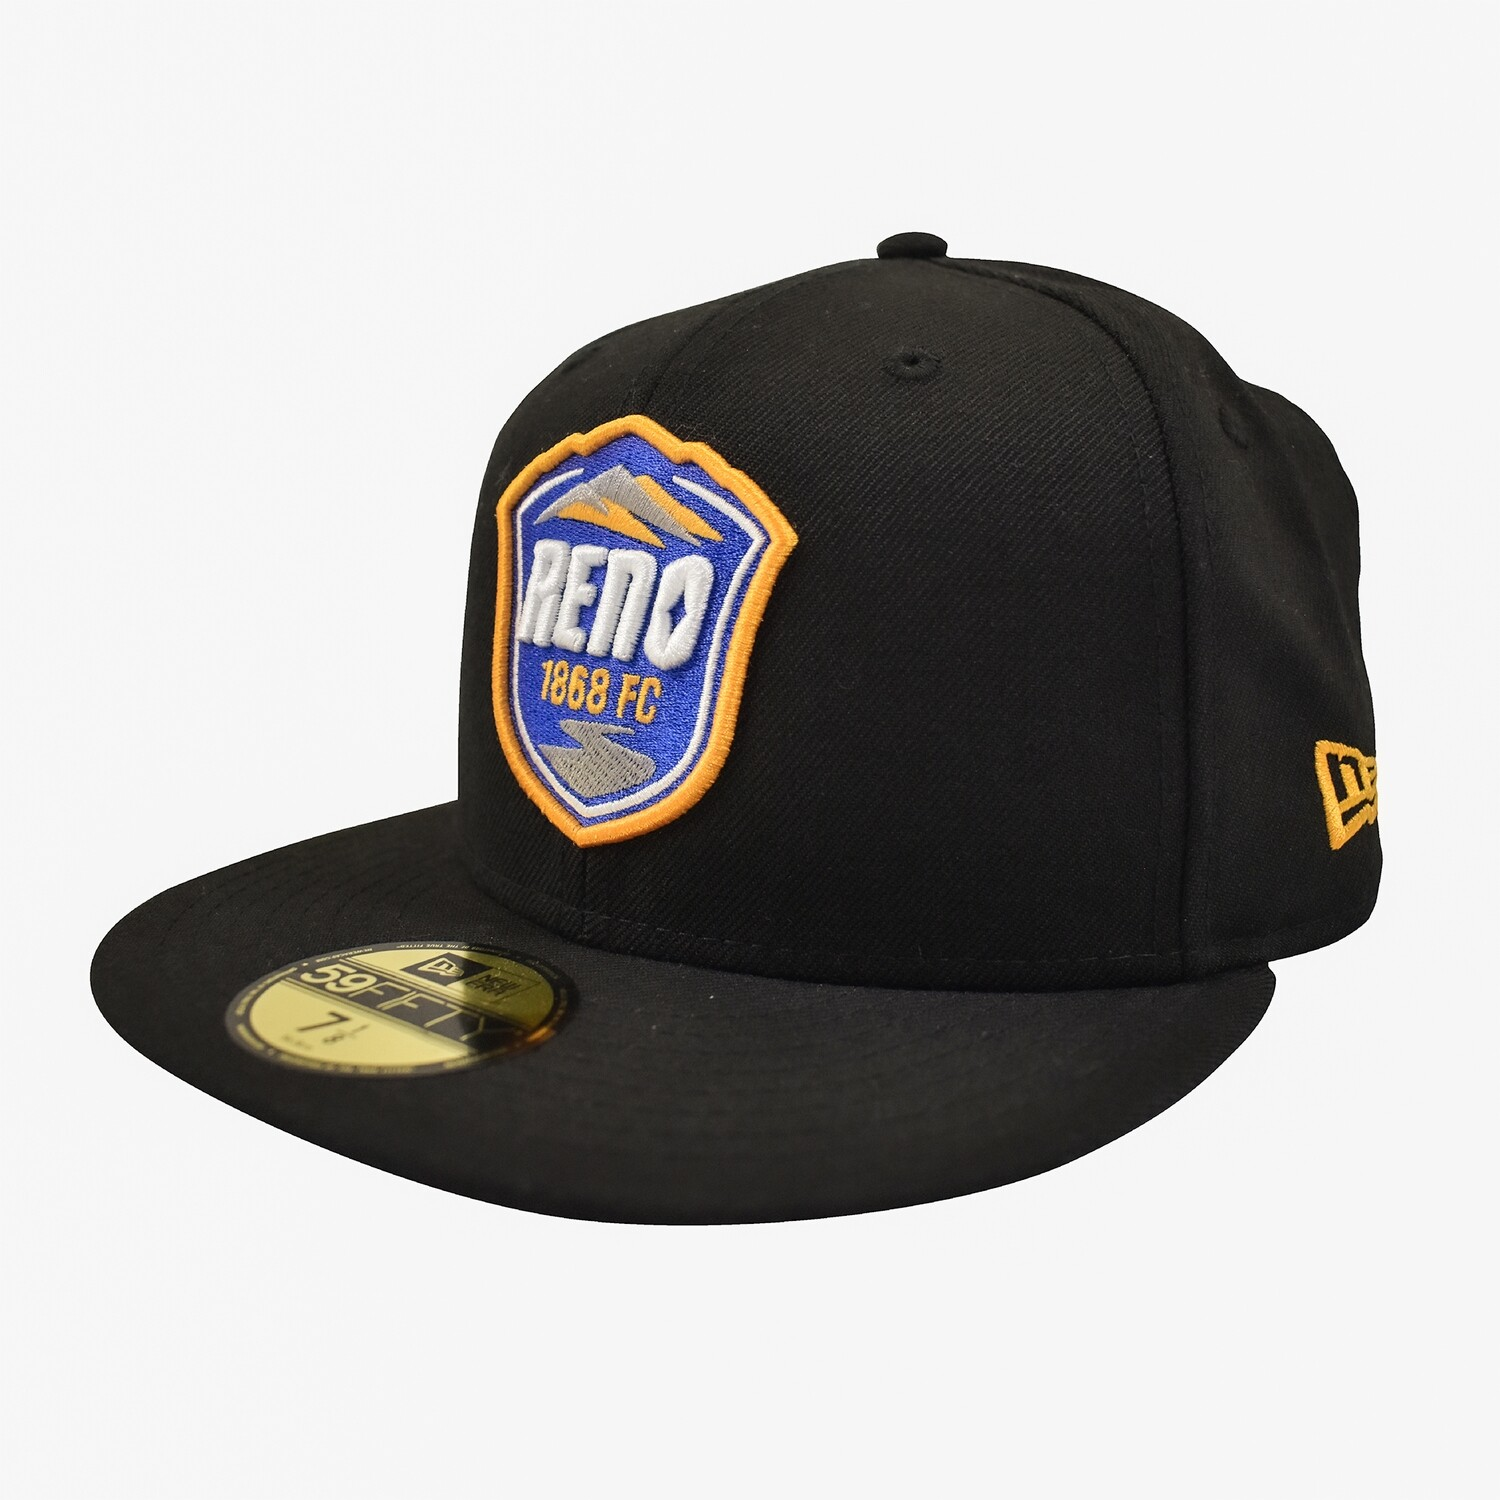 Reno 1868 FC New Era 59Fifty Fitted Hat - Black